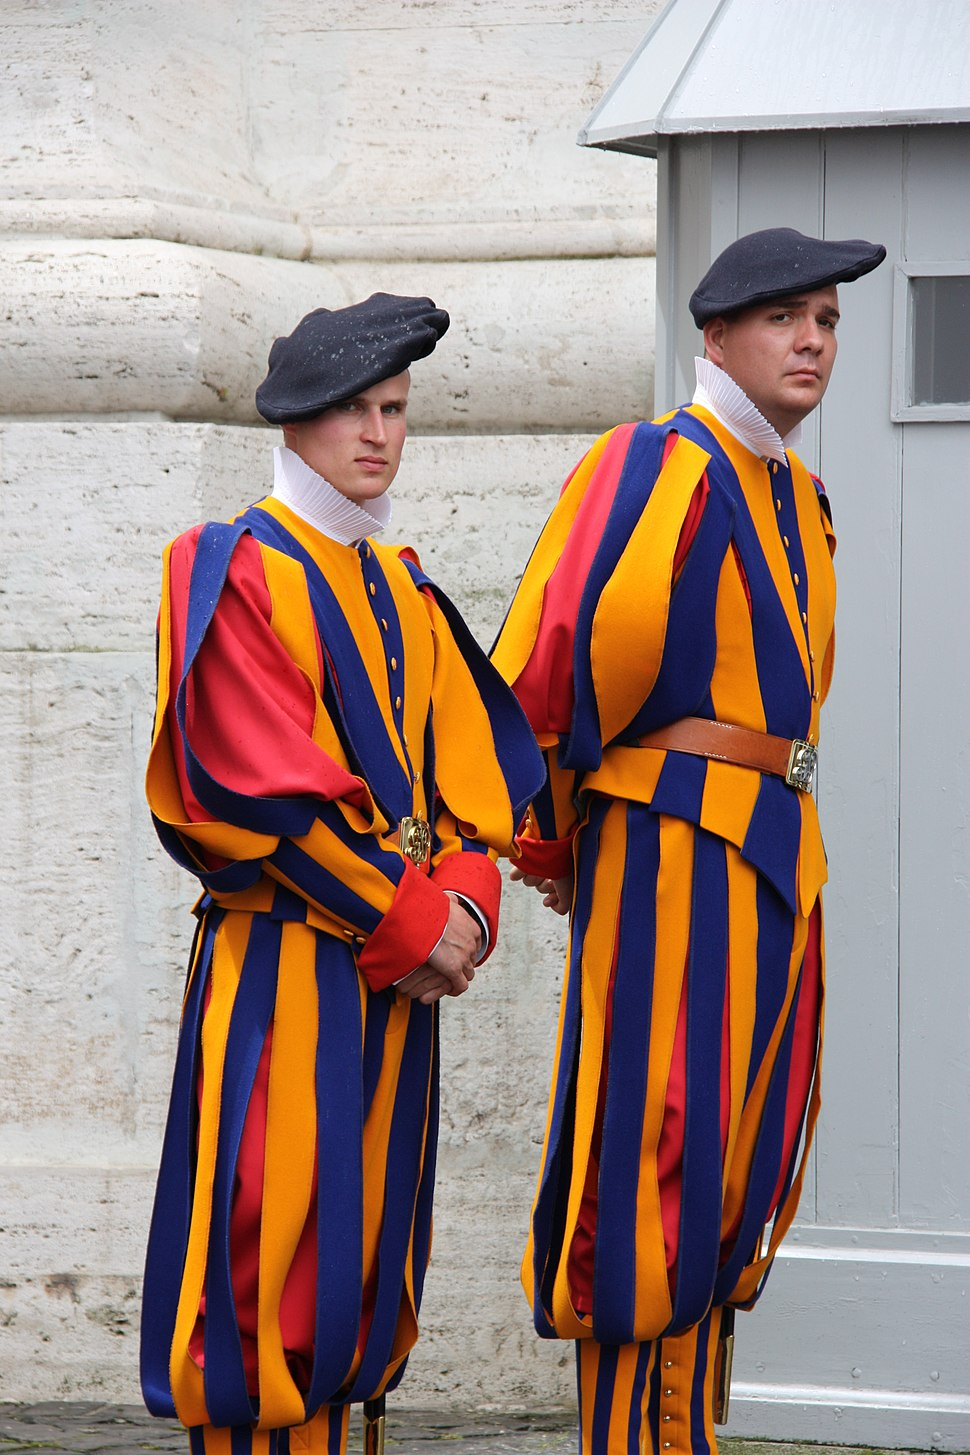 Swiss guards in the Vatican City, 2010